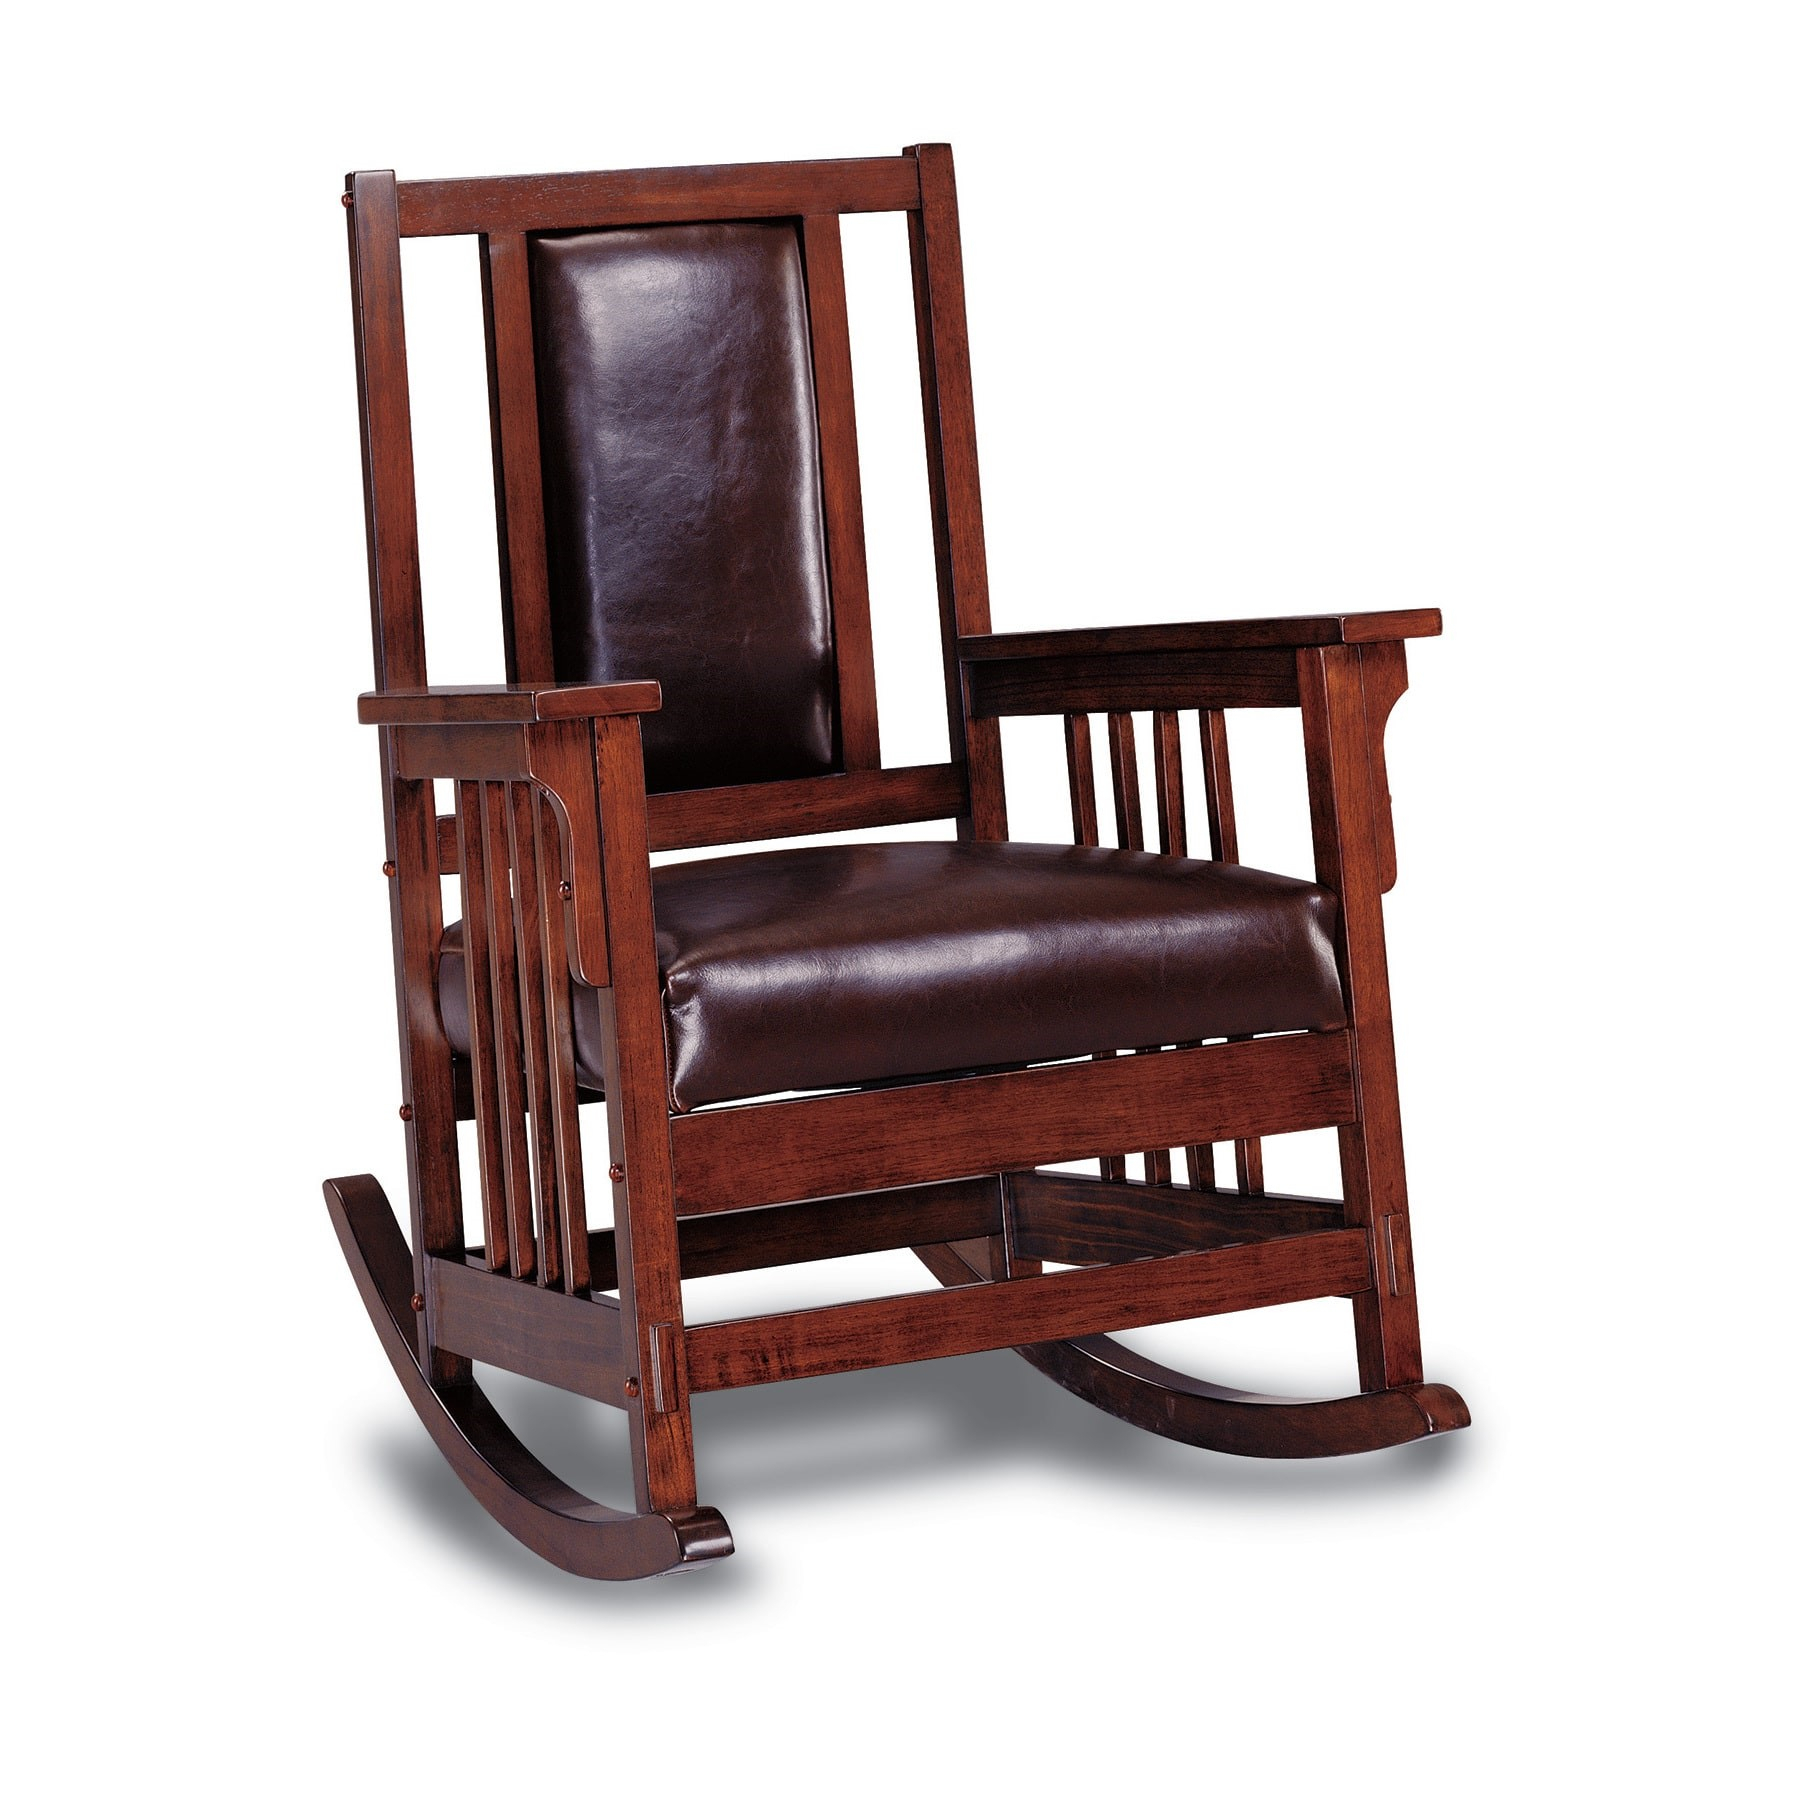 Popular Photo of Elegant Tobacco Brown Wooden Rocking Chairs